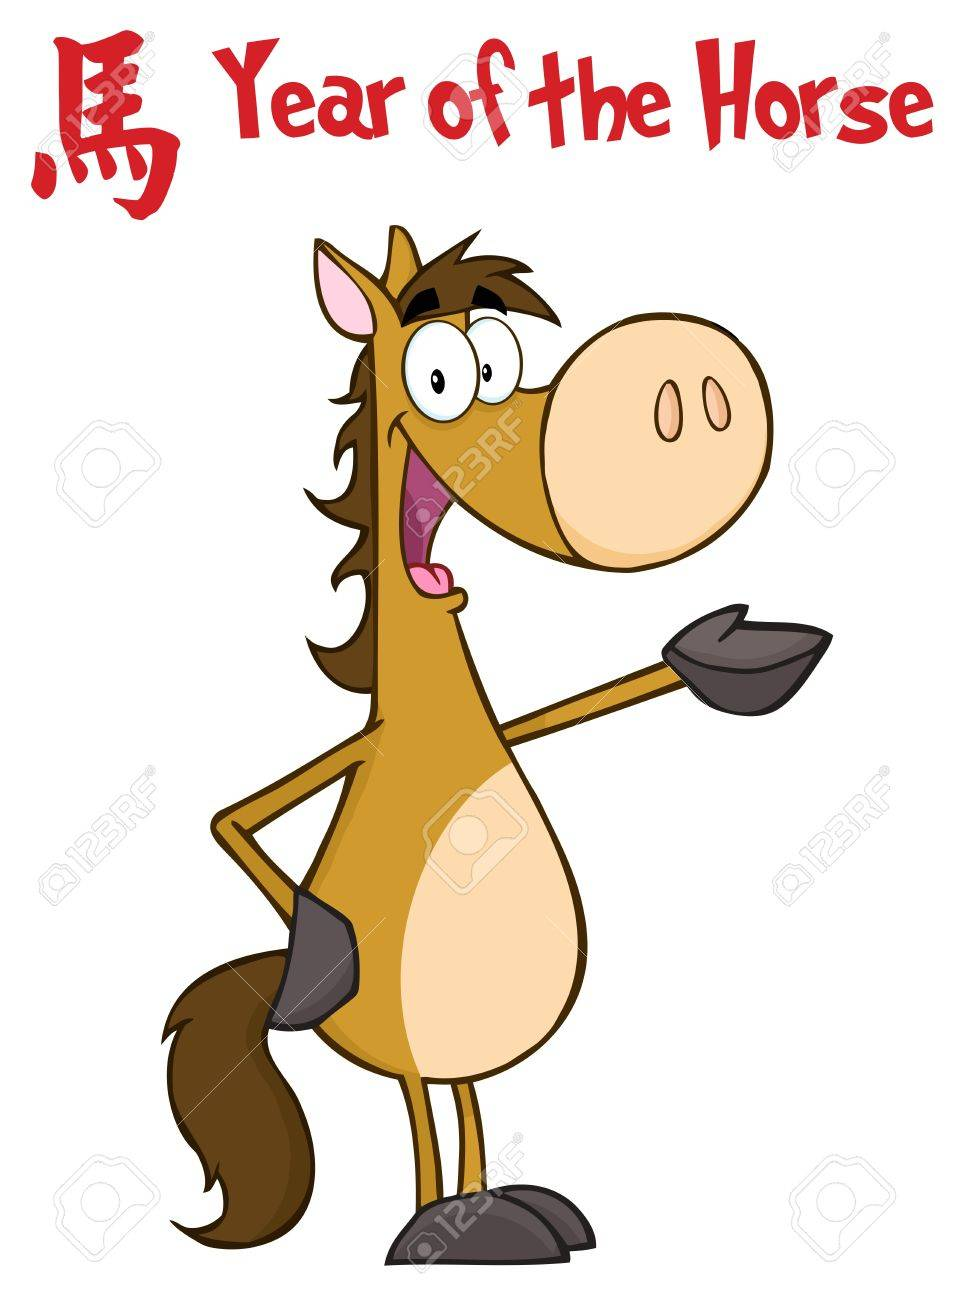 Waving horse character with a year of the horse chinese symbol waving horse character with a year of the horse chinese symbol and text stock vector buycottarizona